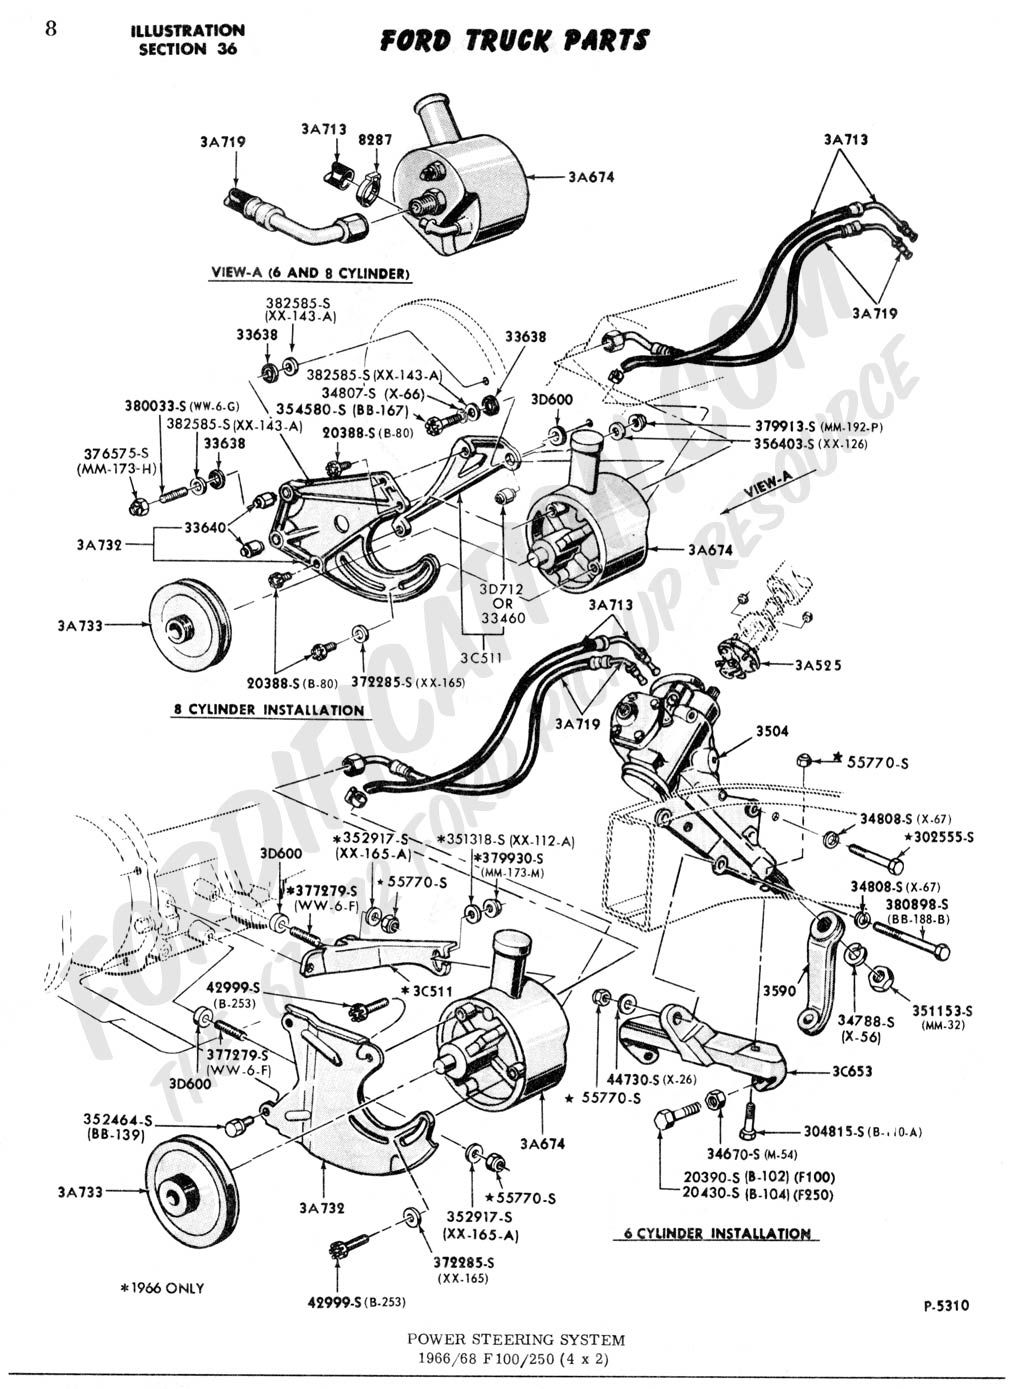 1963 Ford Falcon Steering Column Wiring Diagram